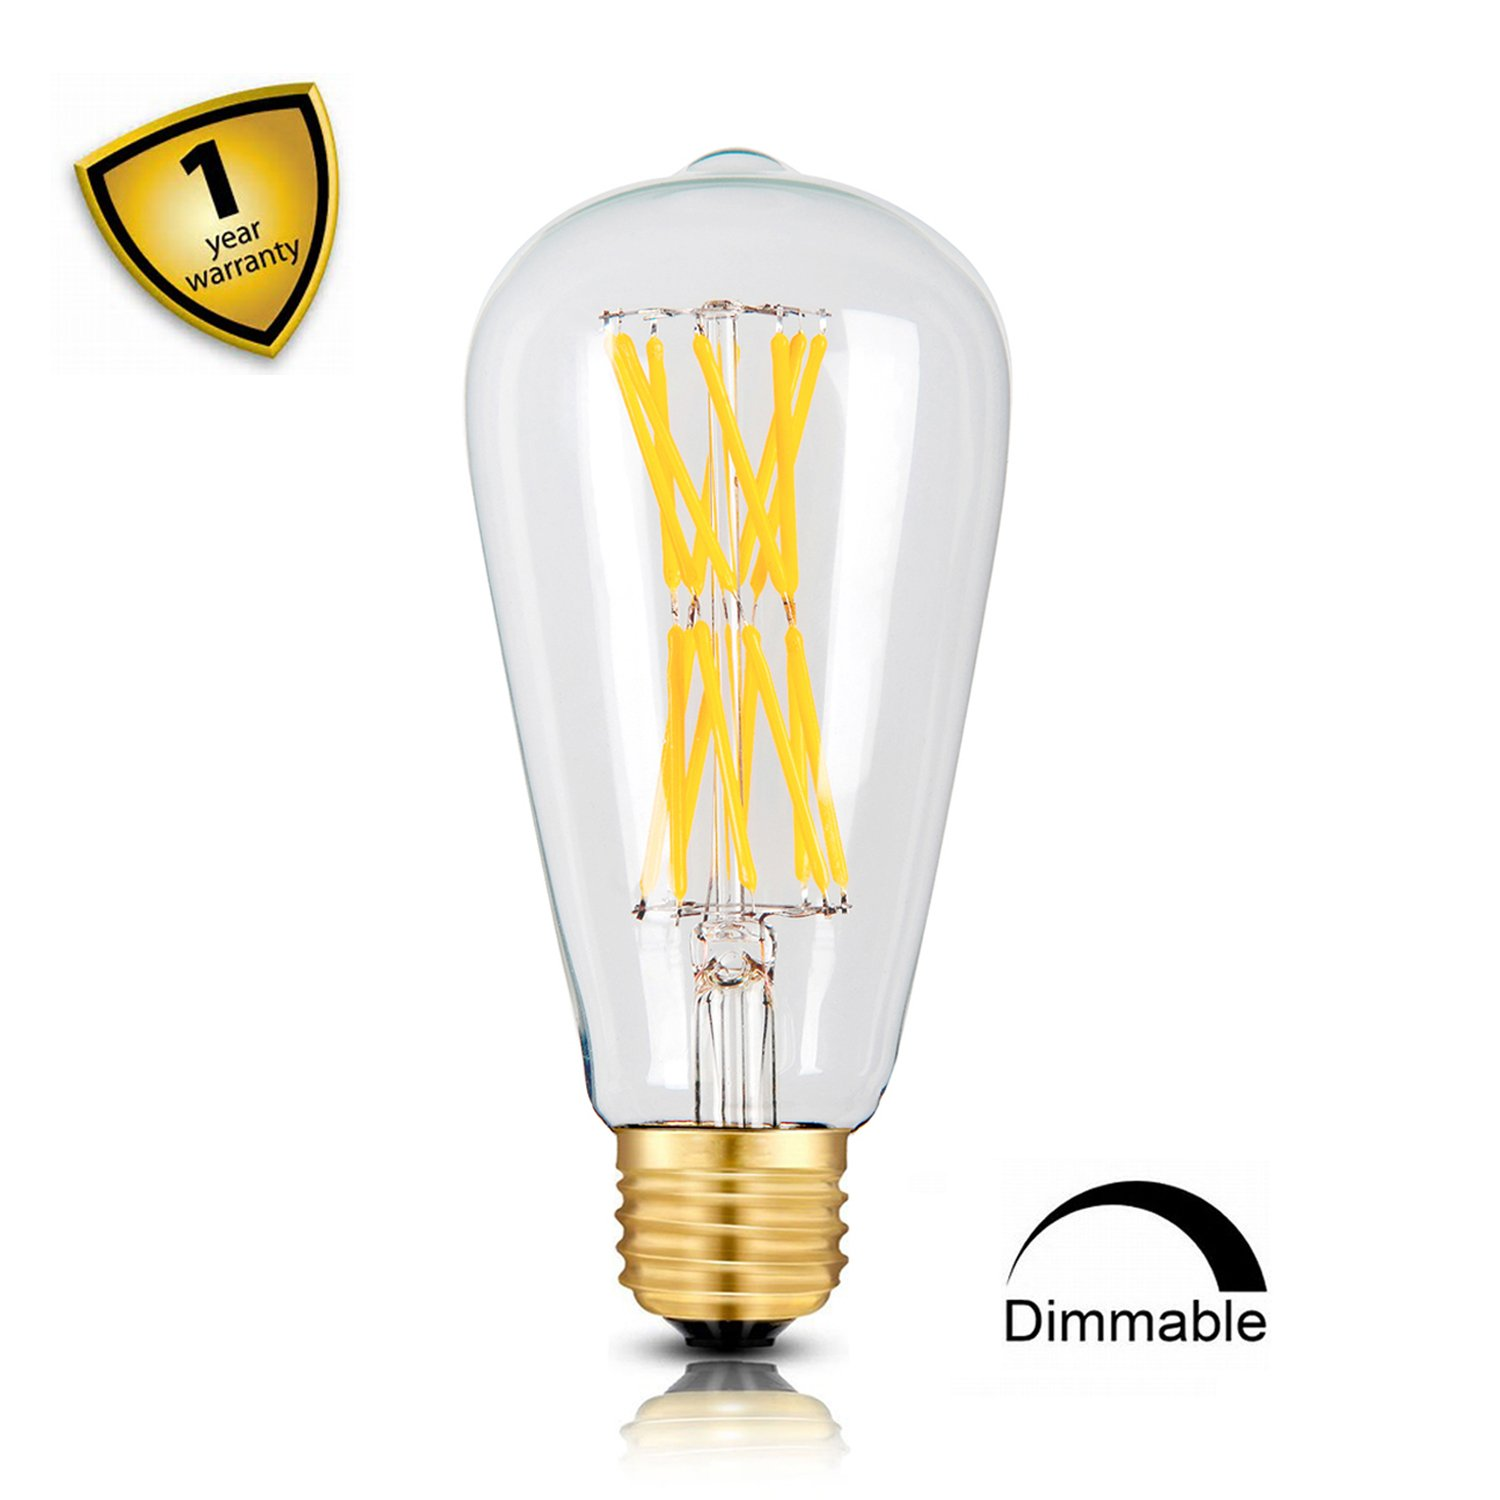 Leools LED Edison Bulb 15W Dimmable 2700K Warm White 1300LM, 120W Equivalent E26 Medium Base, ST64 Vintage LED Filament Bulbs, 360 Degrees Beam Angle, Pack of 1